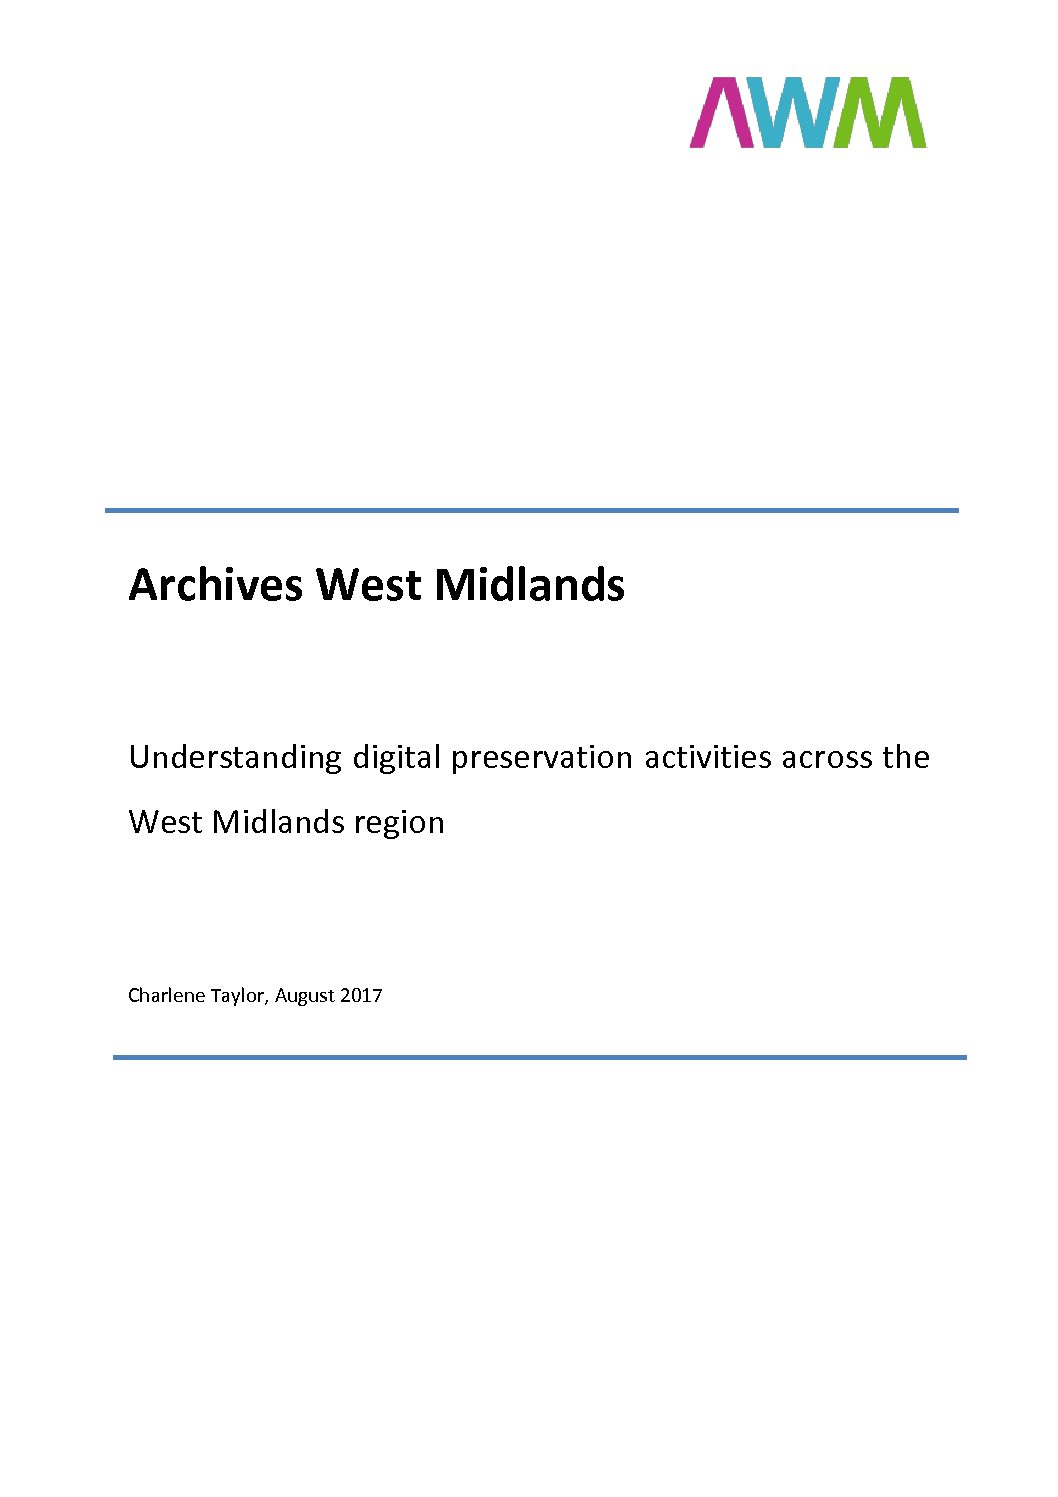 Report on digital preservation in the West Midlands